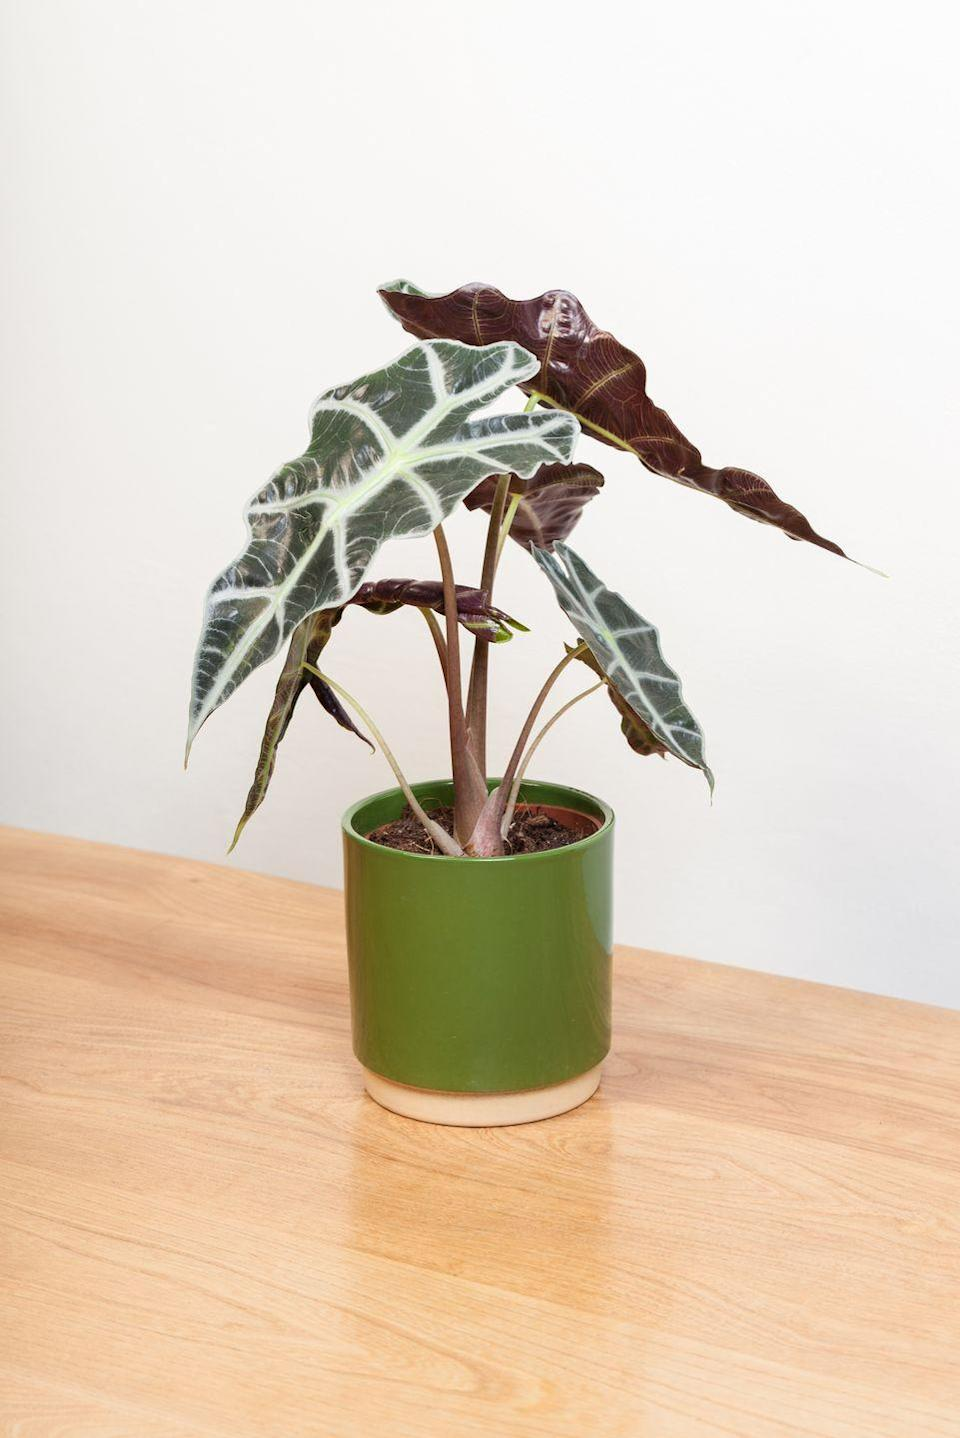 "<p>Also known as 'elephant's ears', this indoor plant loves humidity and bright, indirect light. It won't do well in a windowless bathroom but will bring pattern and waxy texture to a bathroom with natural light. </p><p><a class=""link rapid-noclick-resp"" href=""https://go.redirectingat.com?id=127X1599956&url=https%3A%2F%2Fwww.crocus.co.uk%2Fplants%2F_%2Falocasia--amazonica-polly%2Fclassid.2000027731%2F&sref=https%3A%2F%2Fwww.countryliving.com%2Fuk%2Fhomes-interiors%2Finteriors%2Fg33454786%2Fbathroom-plants%2F"" rel=""nofollow noopener"" target=""_blank"" data-ylk=""slk:BUY NOW"">BUY NOW</a></p>"